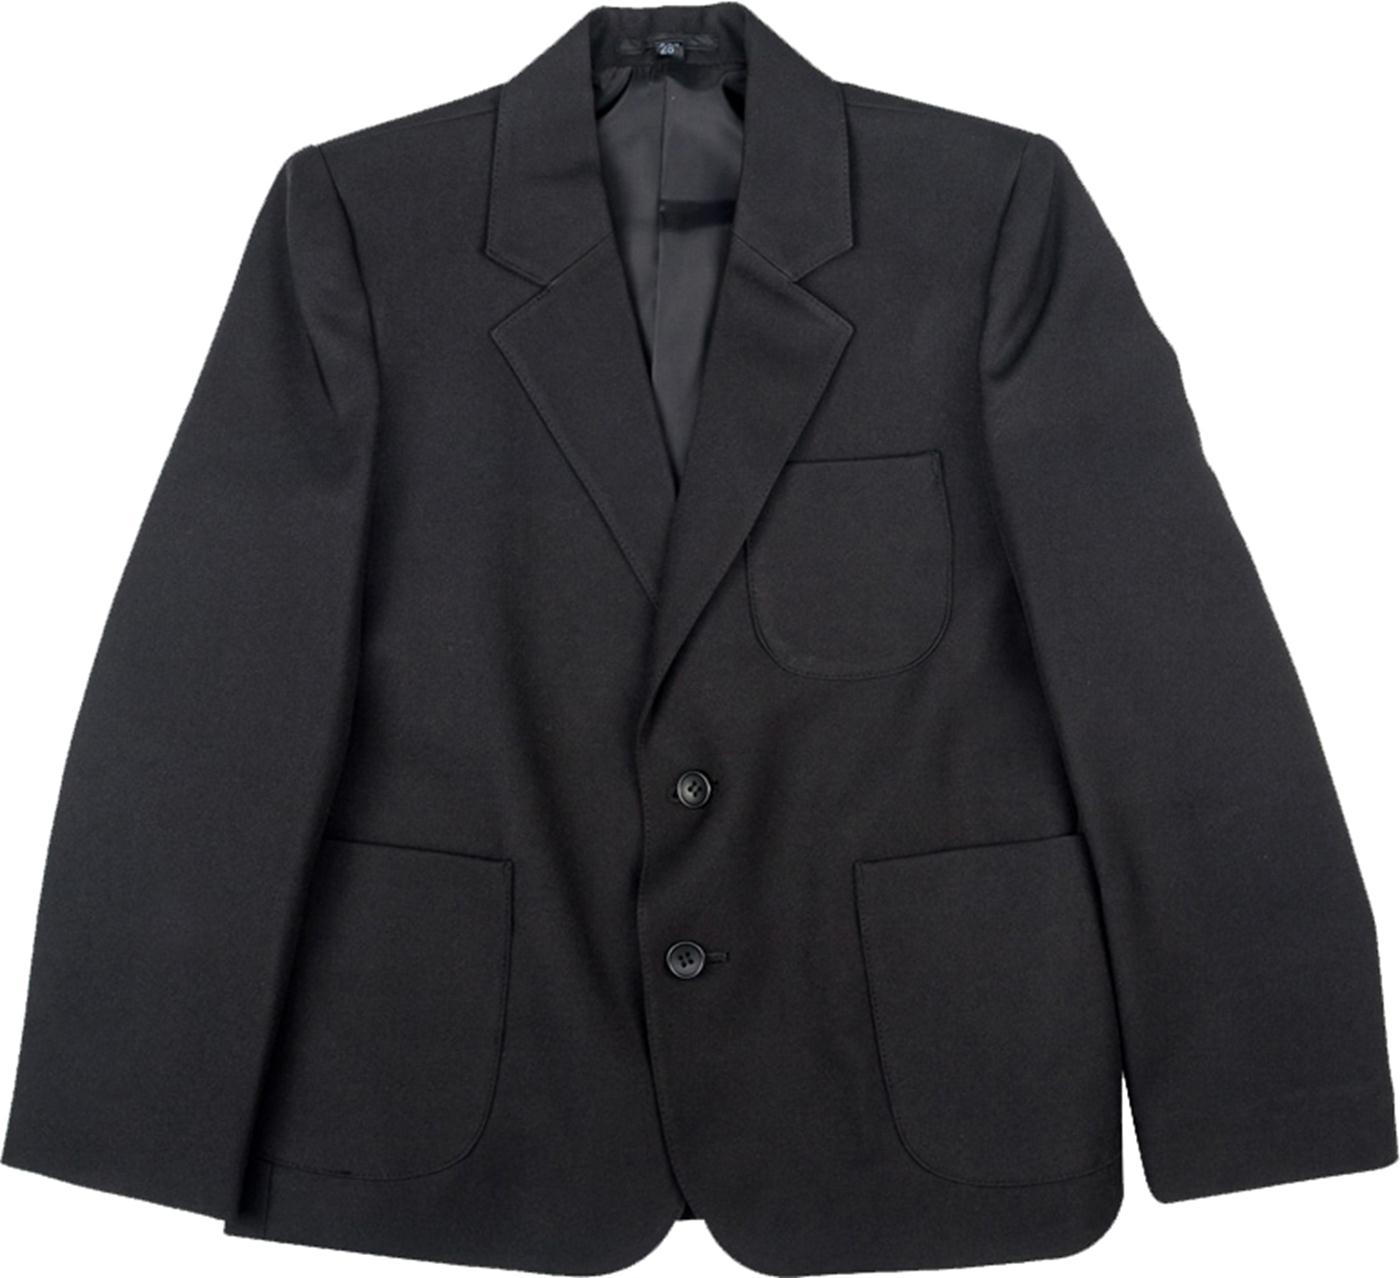 Only Uniform School Uniform Teflon Boys Blazer Jacket